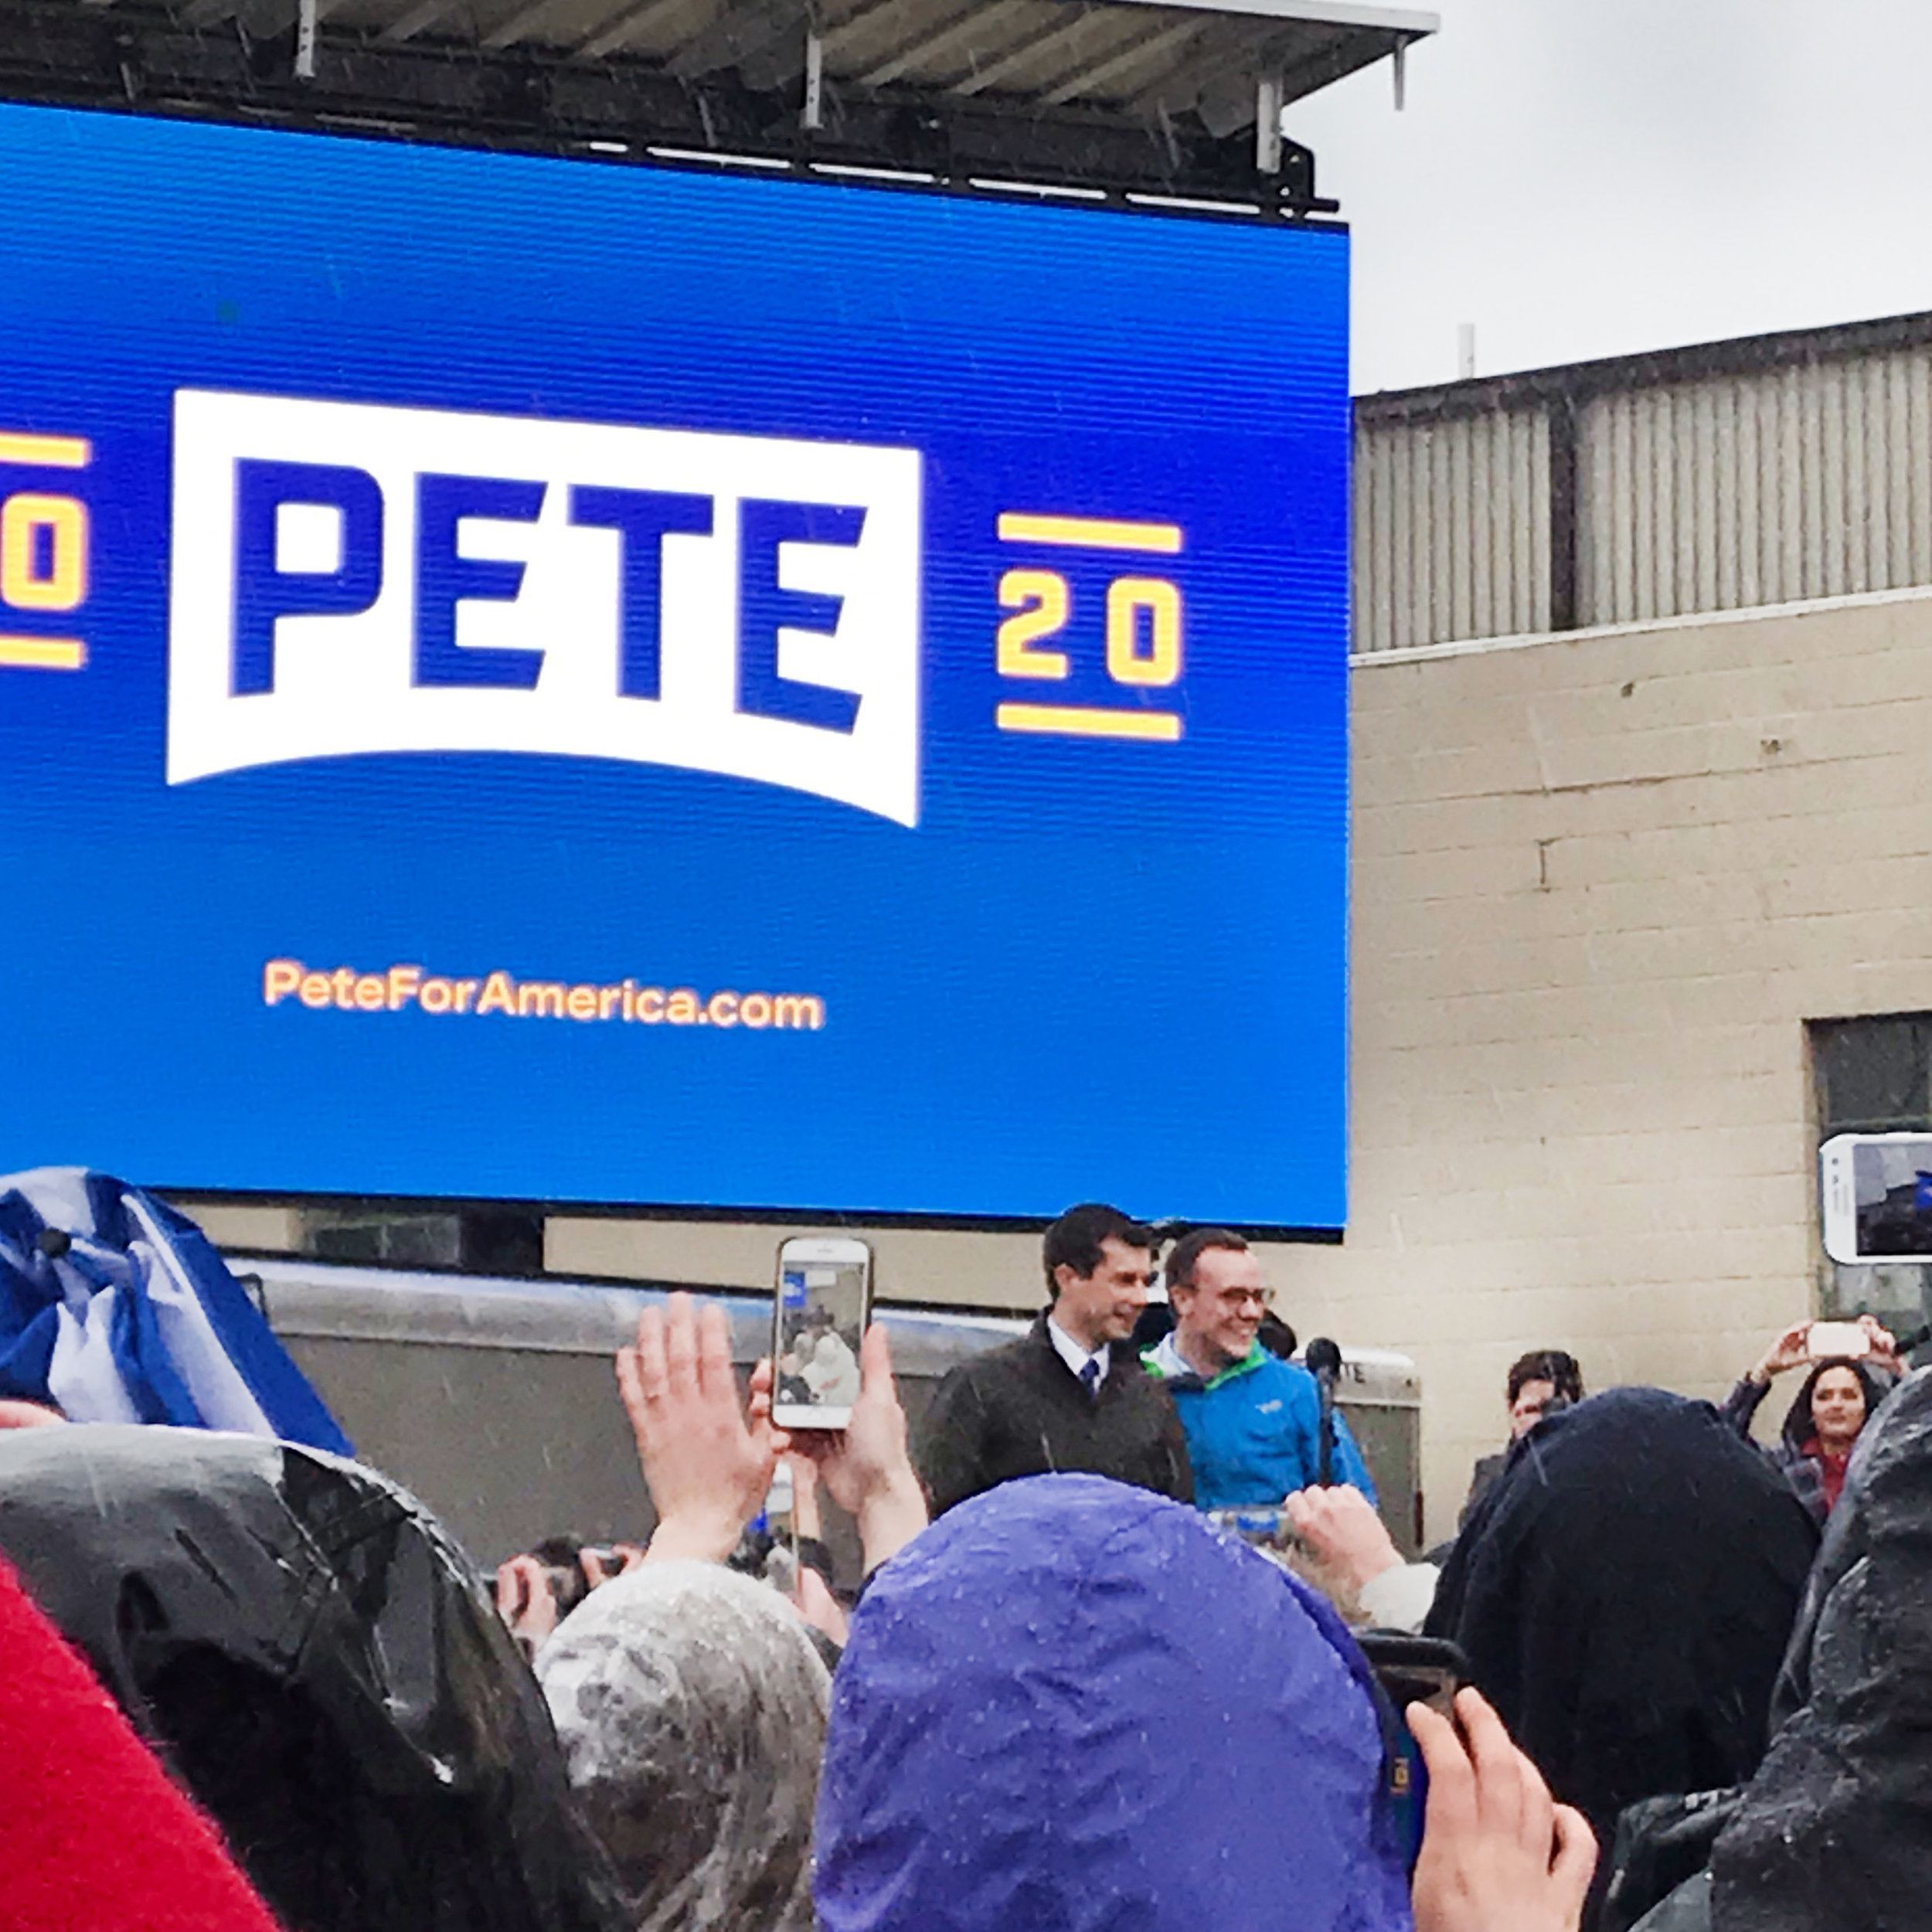 As a Hoosier, I was able to go to a rally for Pete Buttigieg's campaign announcement.  Photo by Eleanor Igwe